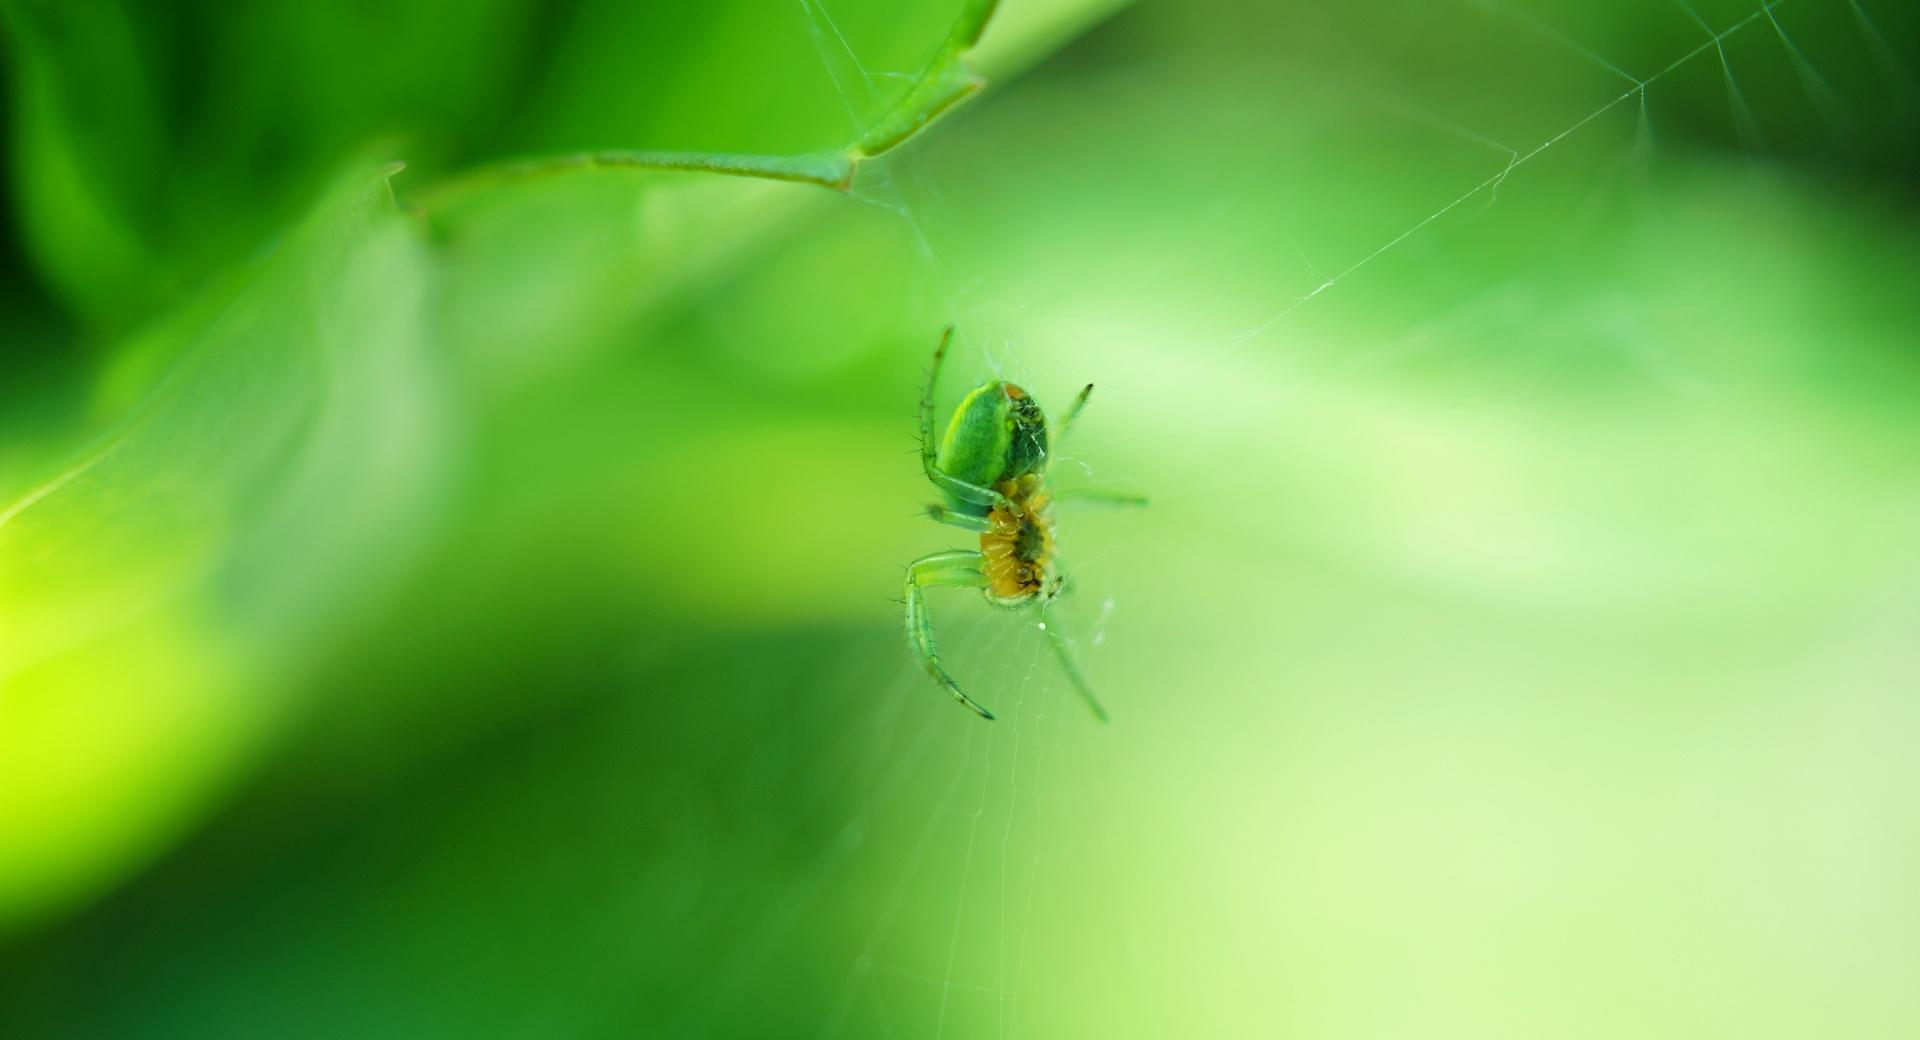 Green Spider wallpapers HD quality